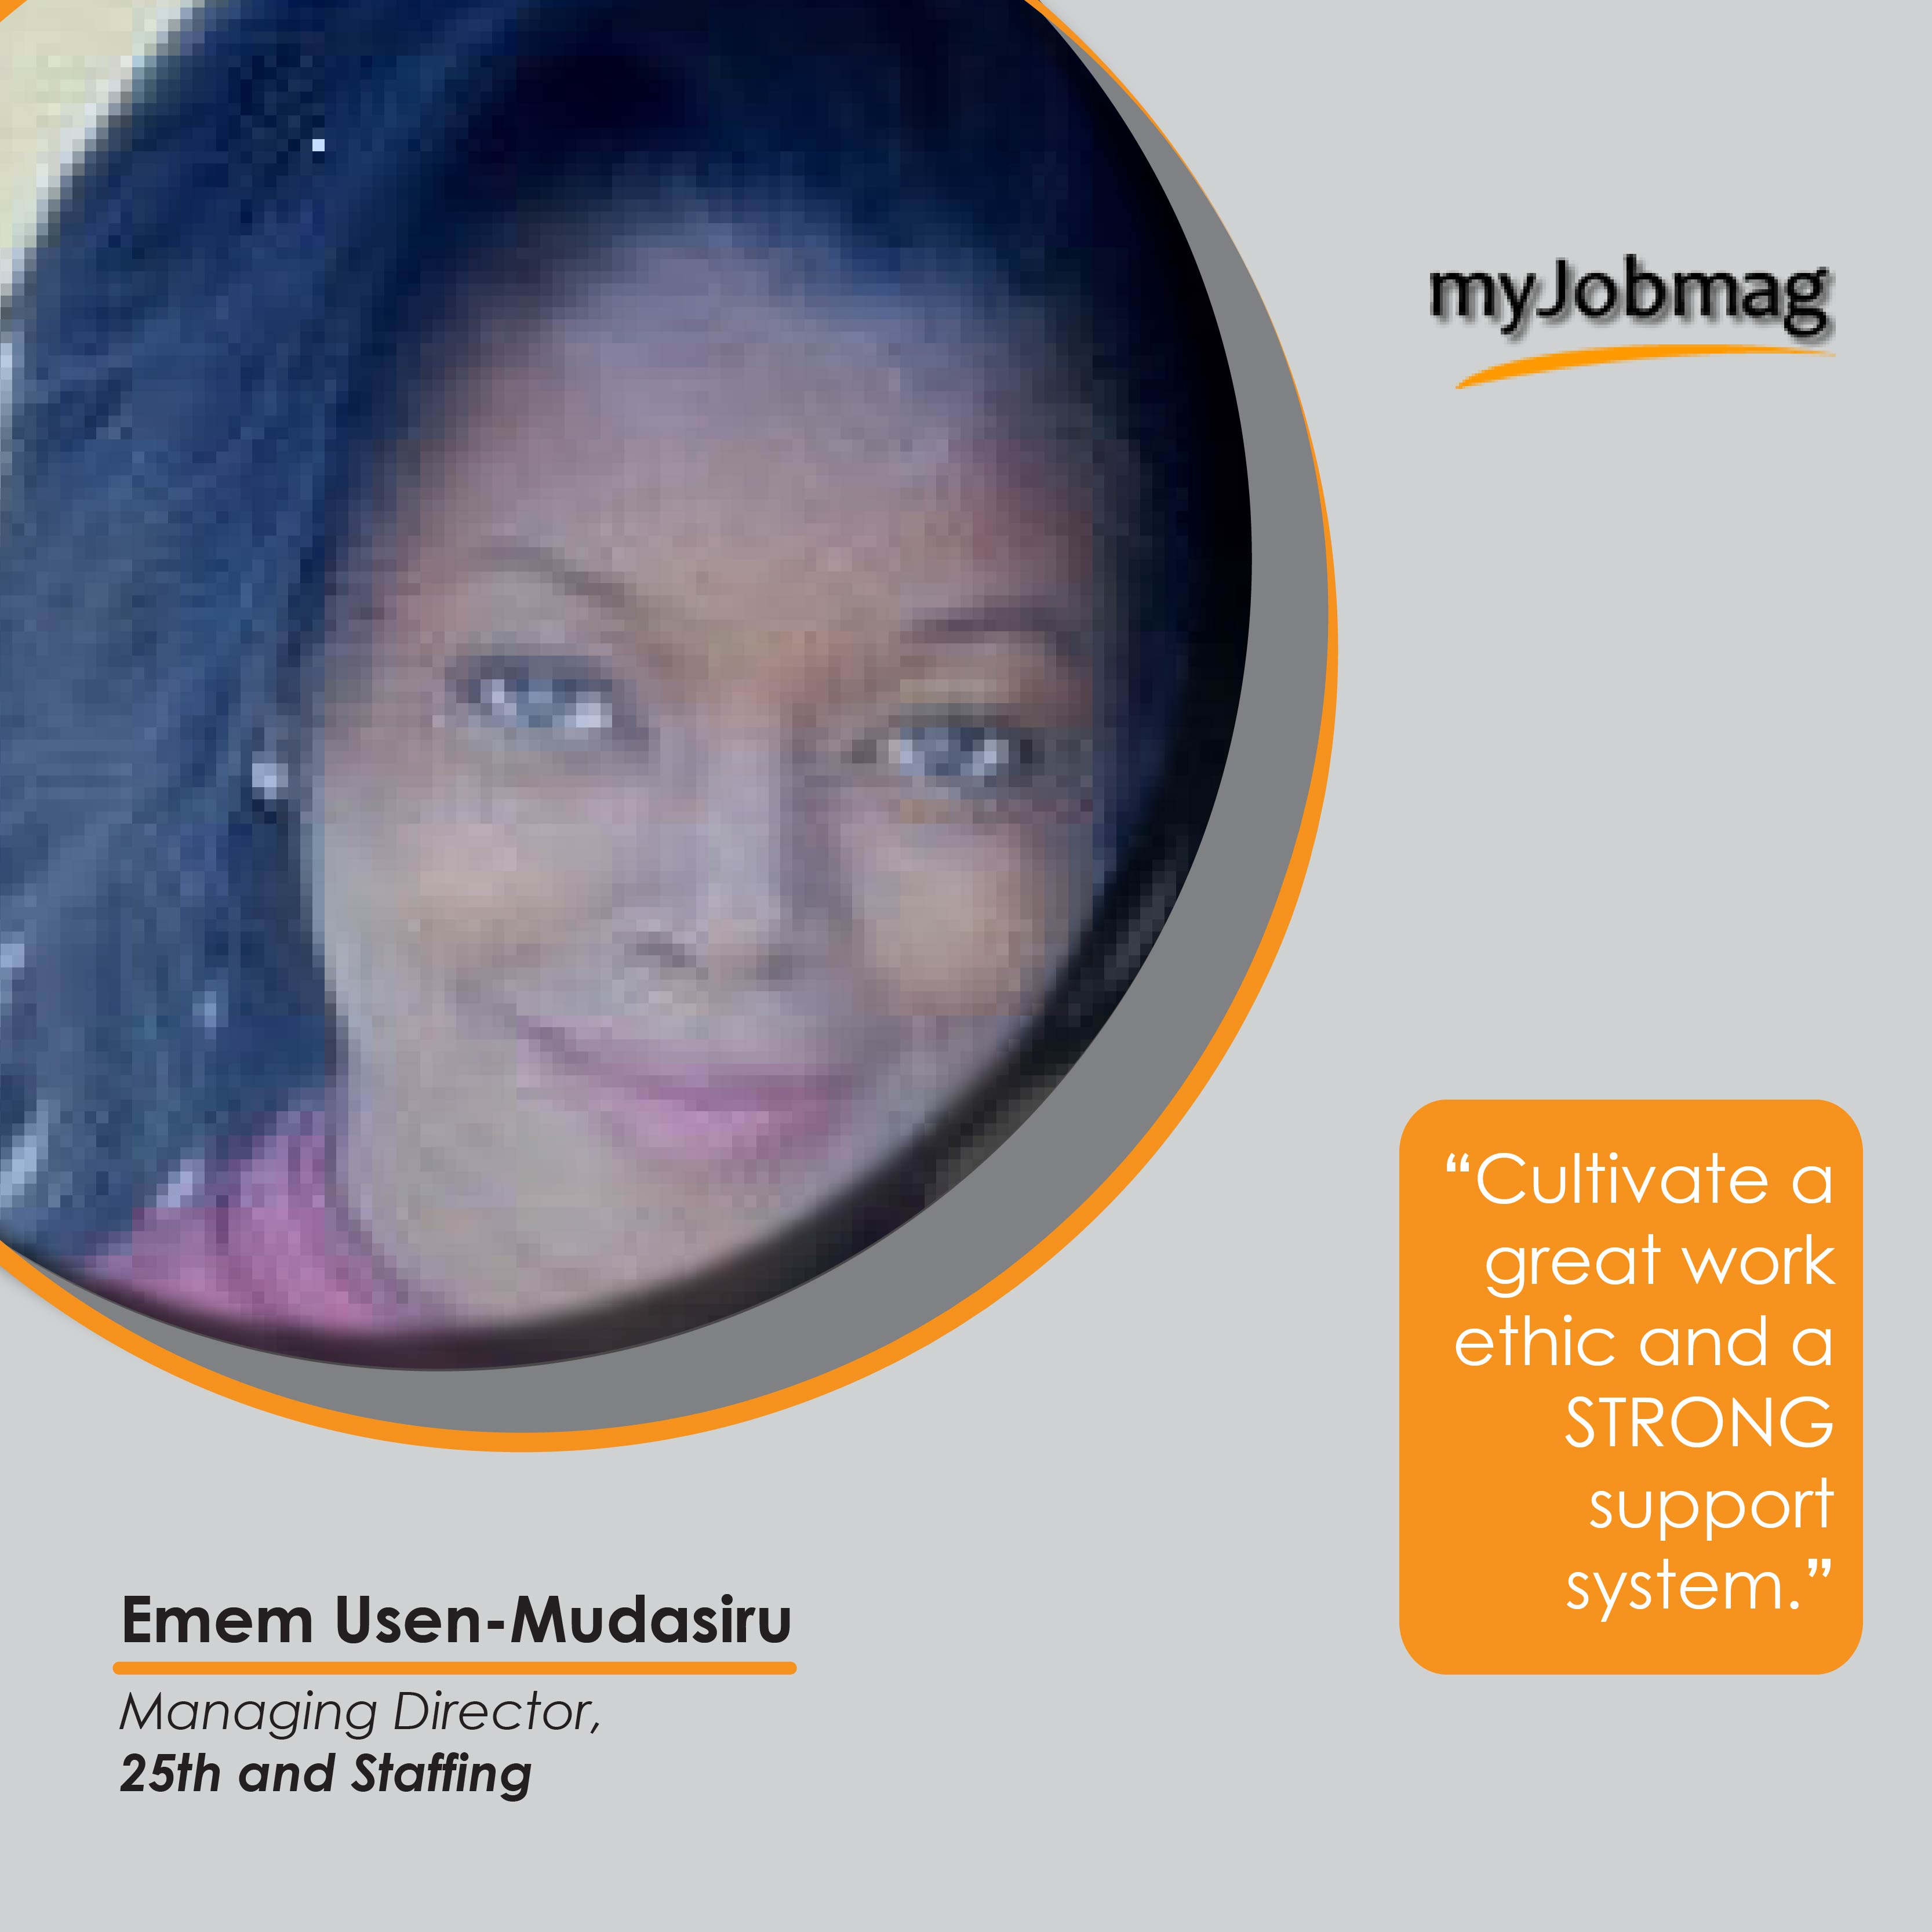 Emem usen Mudasiru career advice MyJobMag